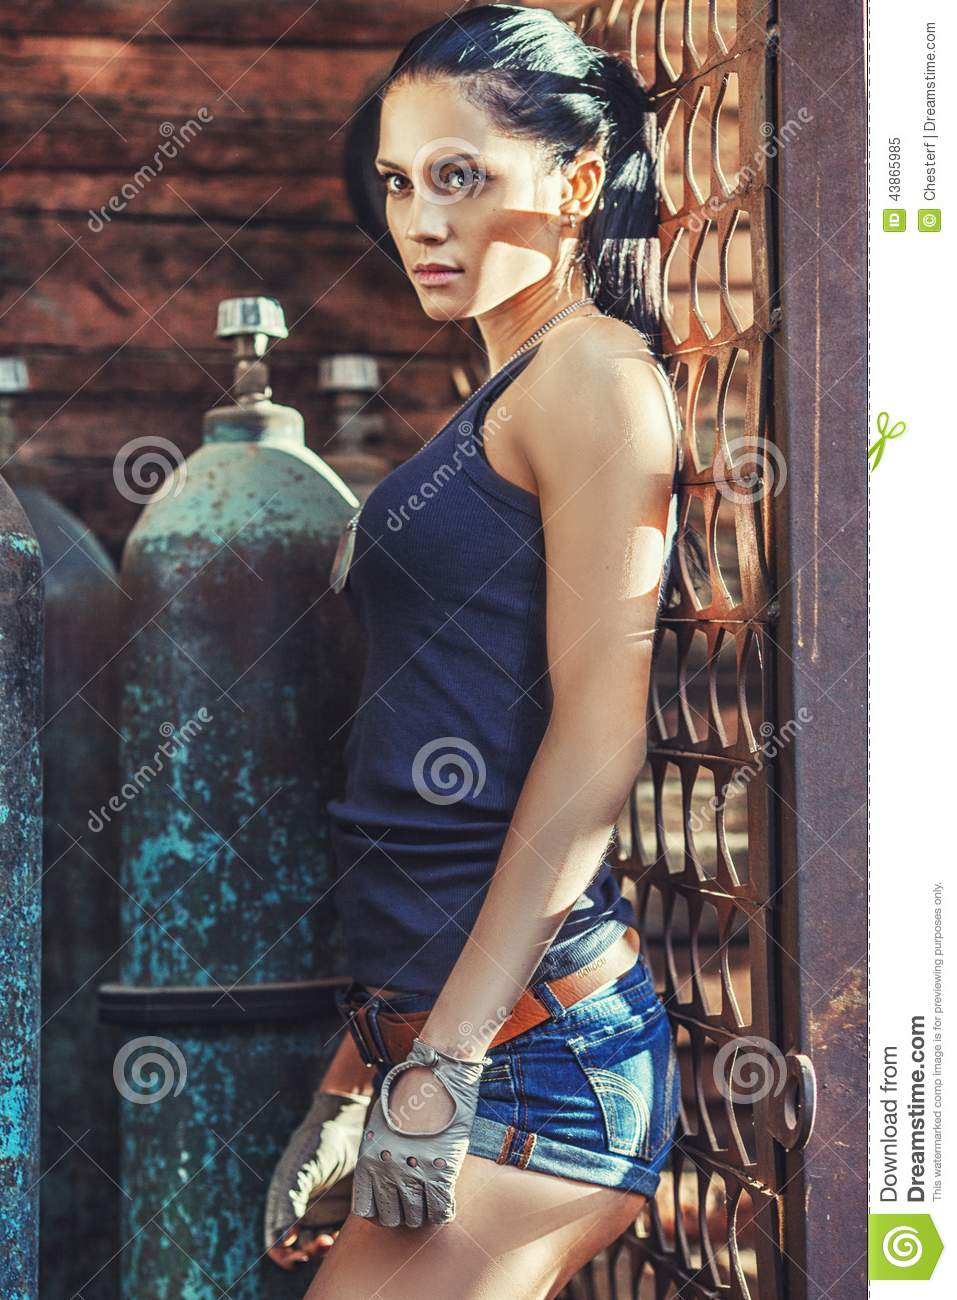 Sexy Soldier Woman On Factory Ruins Stock Photo - Image: 43865985